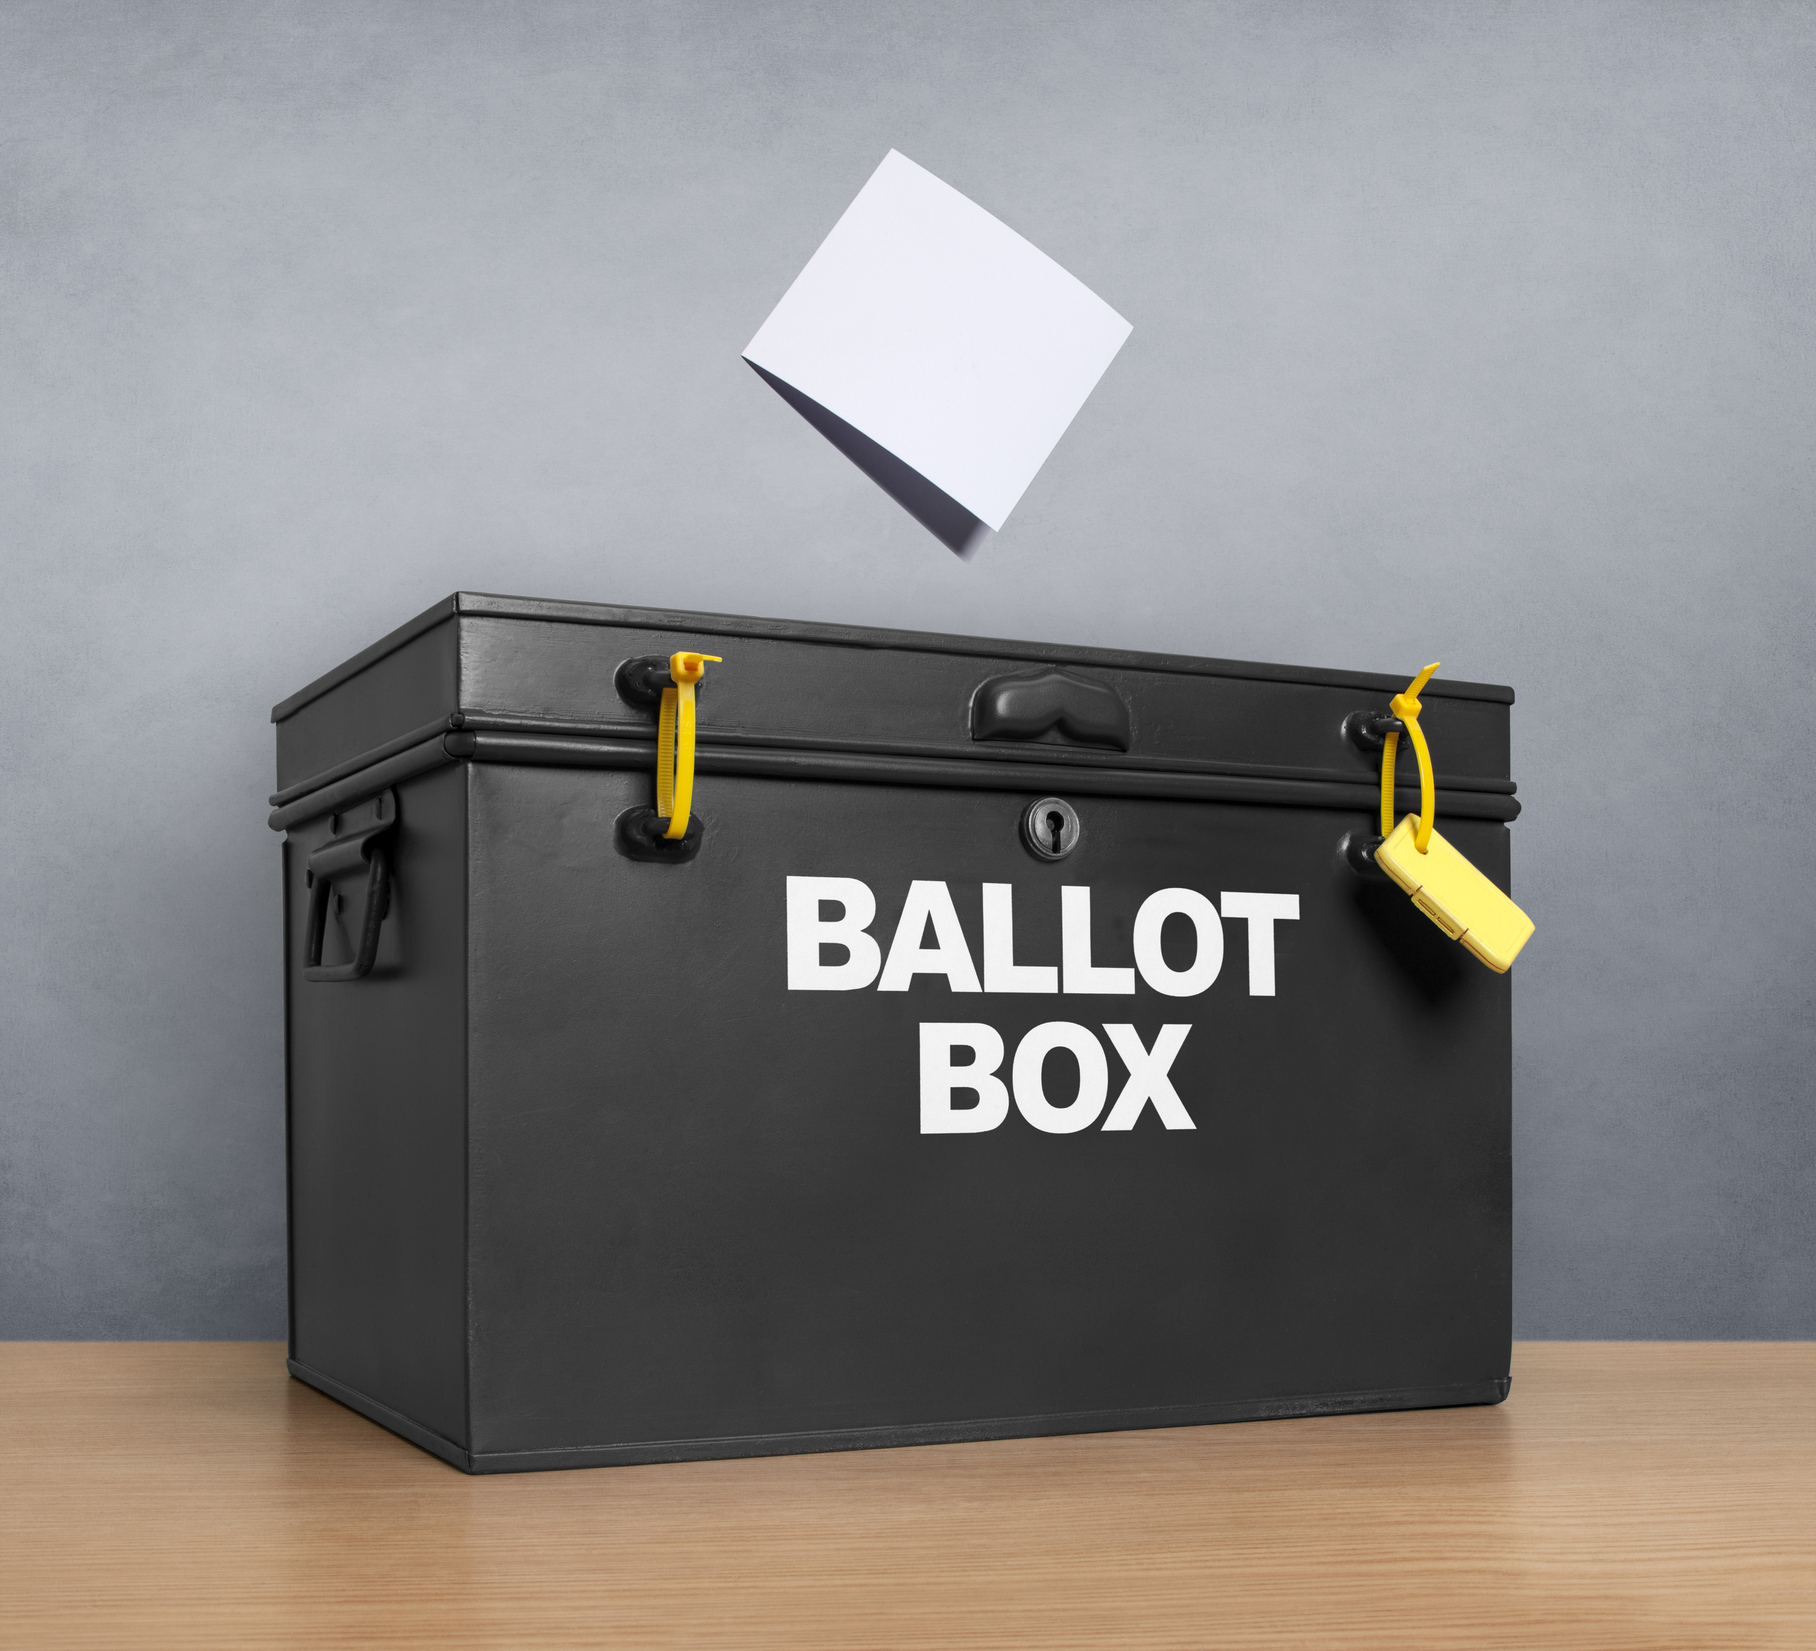 Ballot paper poised above the ballot box